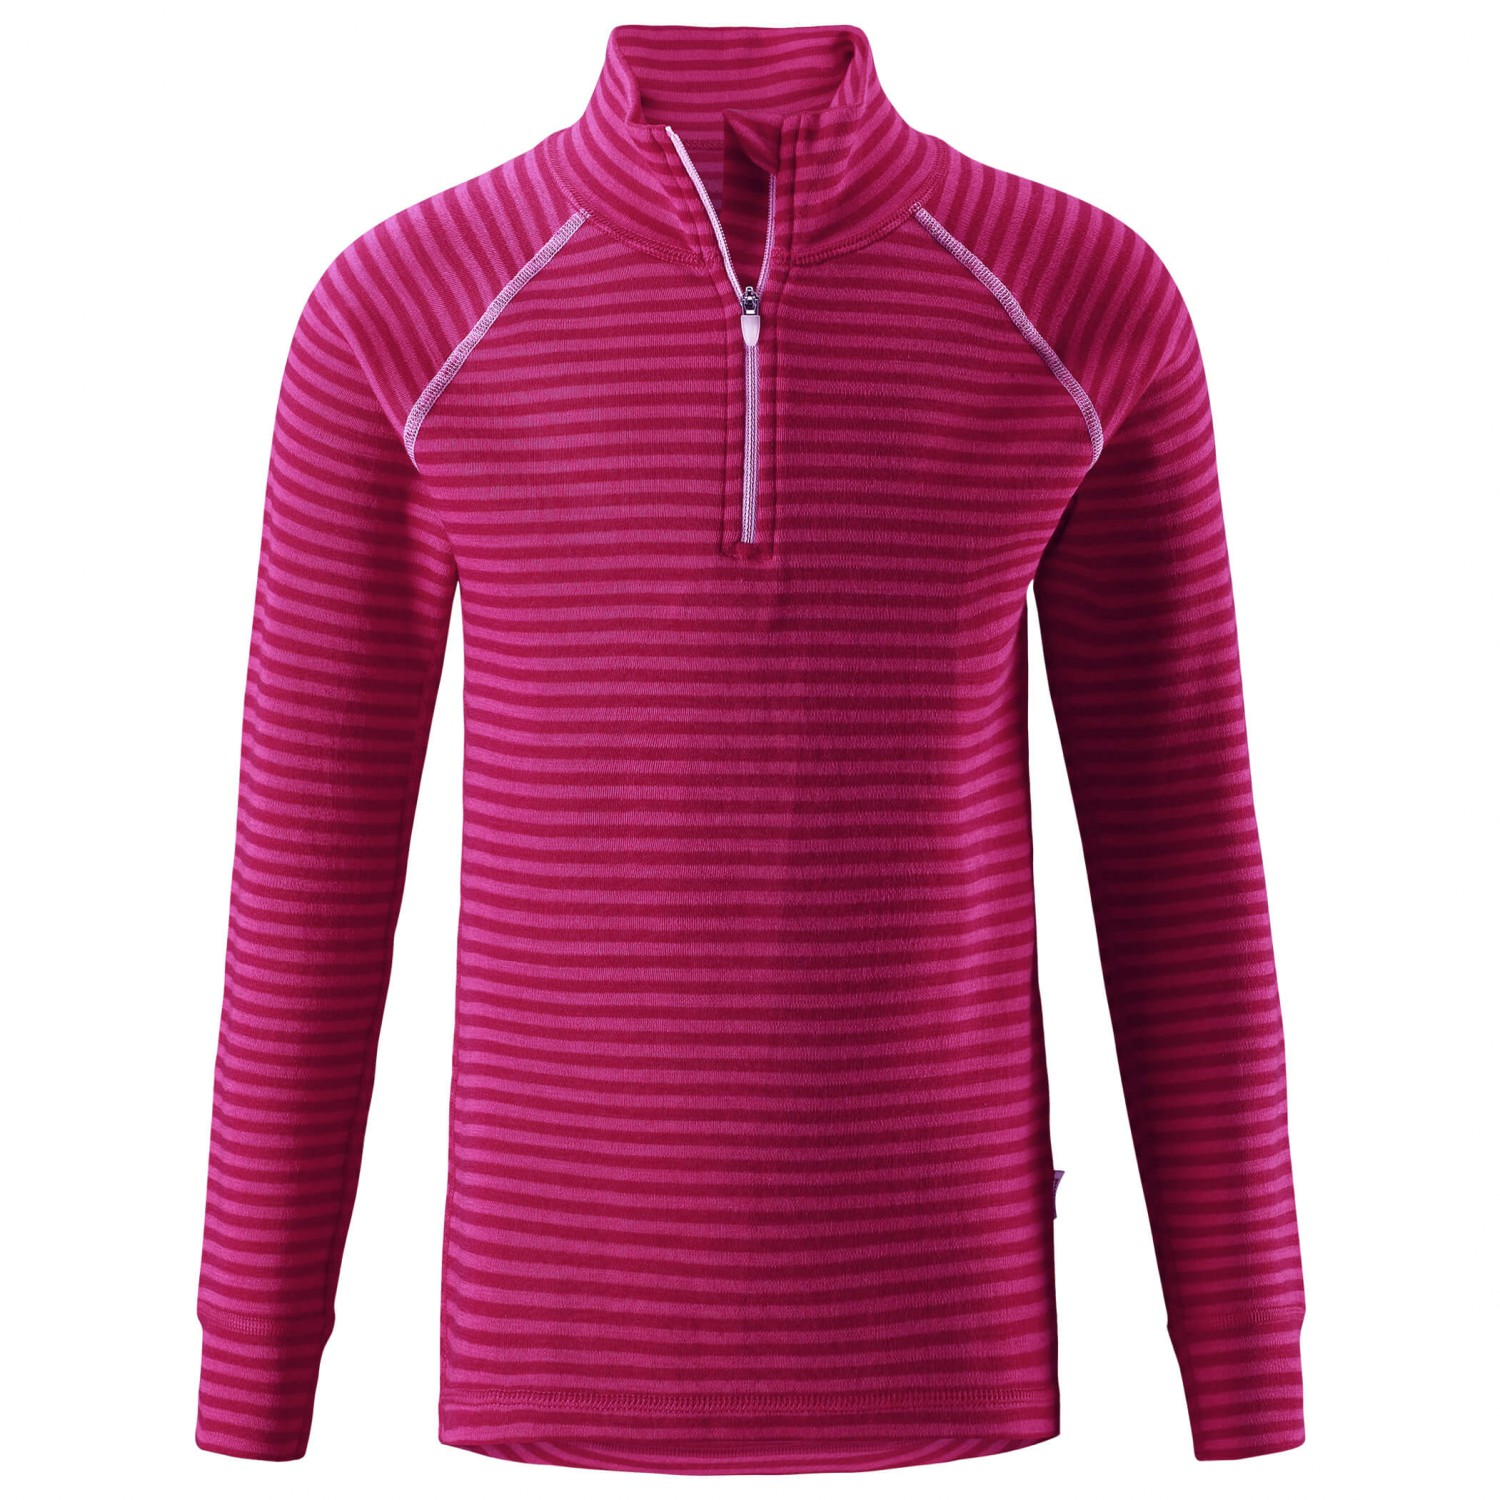 6047f8b3b0 Reima - Kid s Tavast Shirt - Merino base layers ...